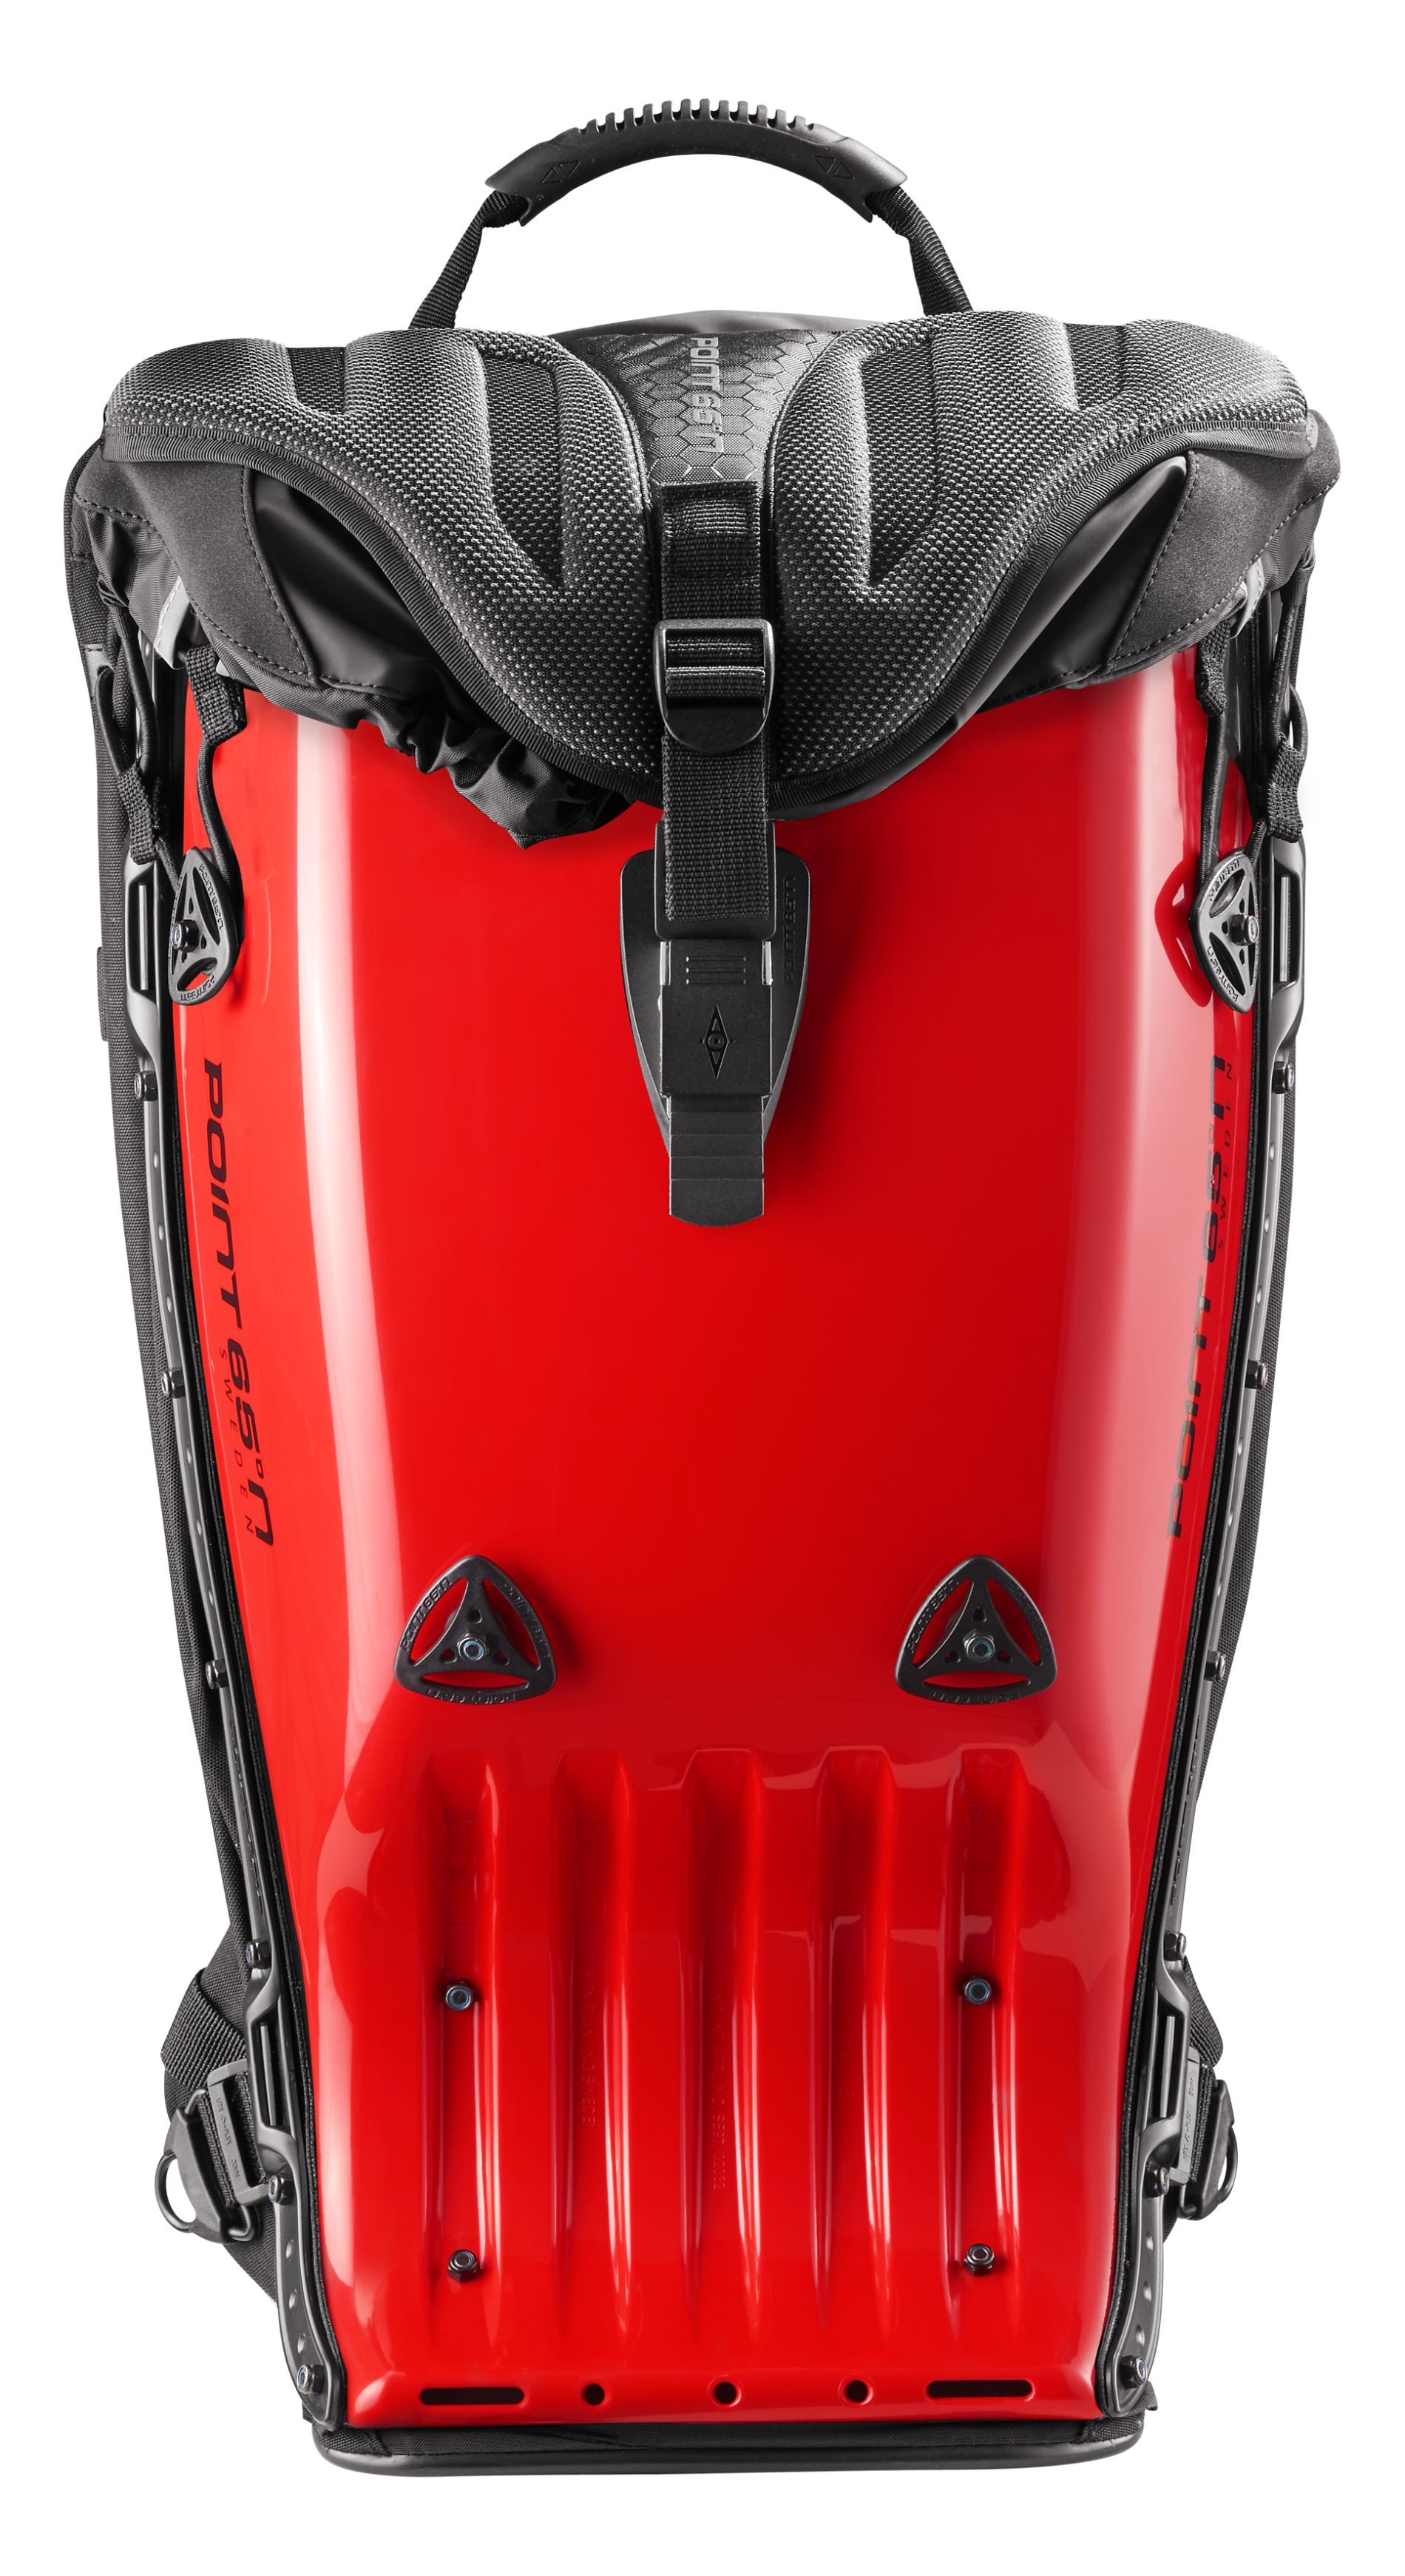 boblbee-25l-gtx-diablo-red-point65